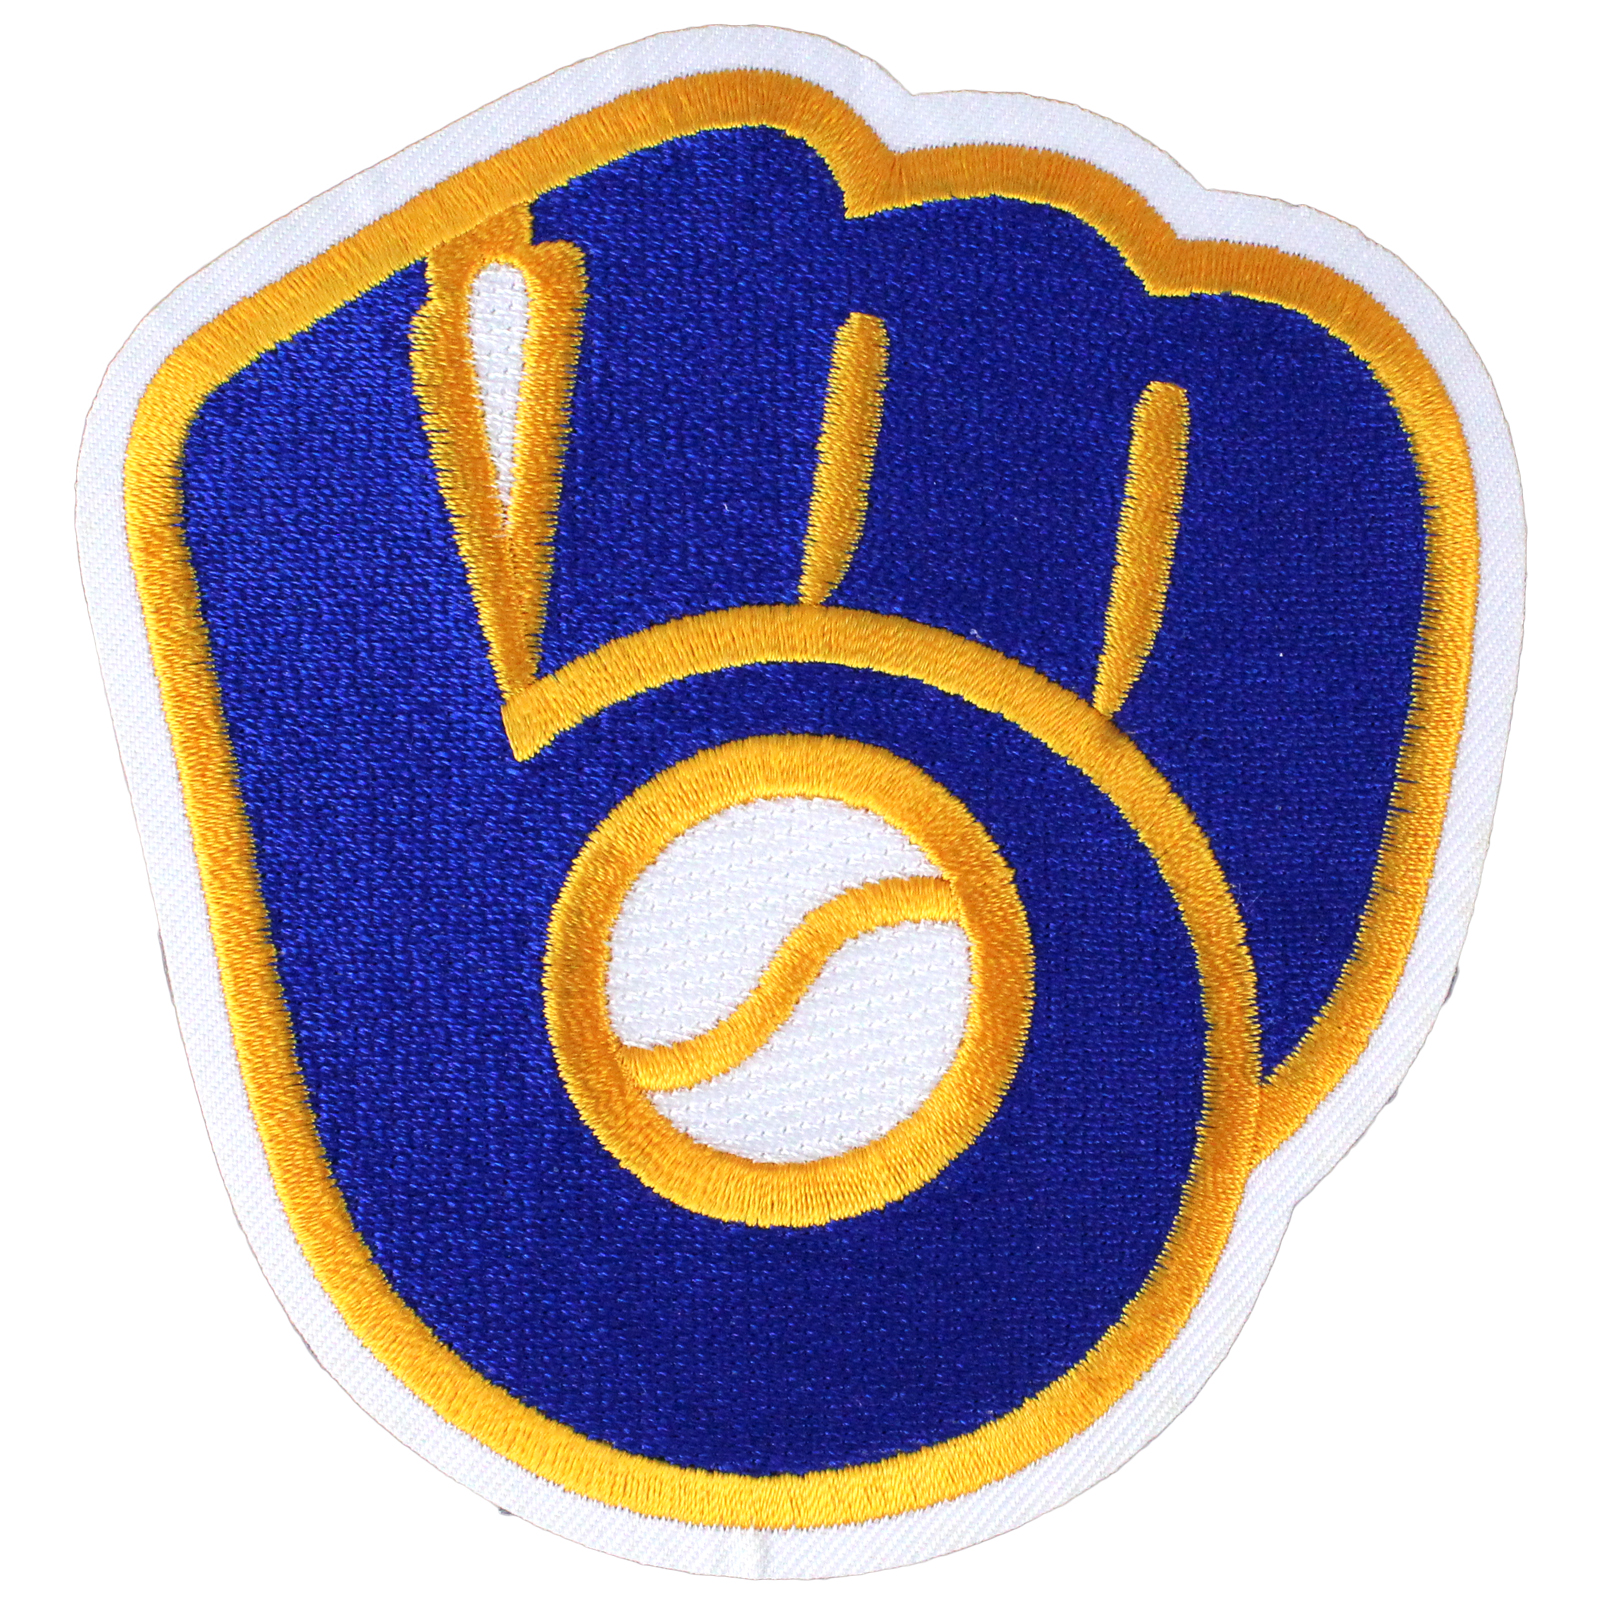 Details about Milwaukee Brewers Team Retro Old Throwback Logo Sleeve Patch  Glove Jersey MLB.